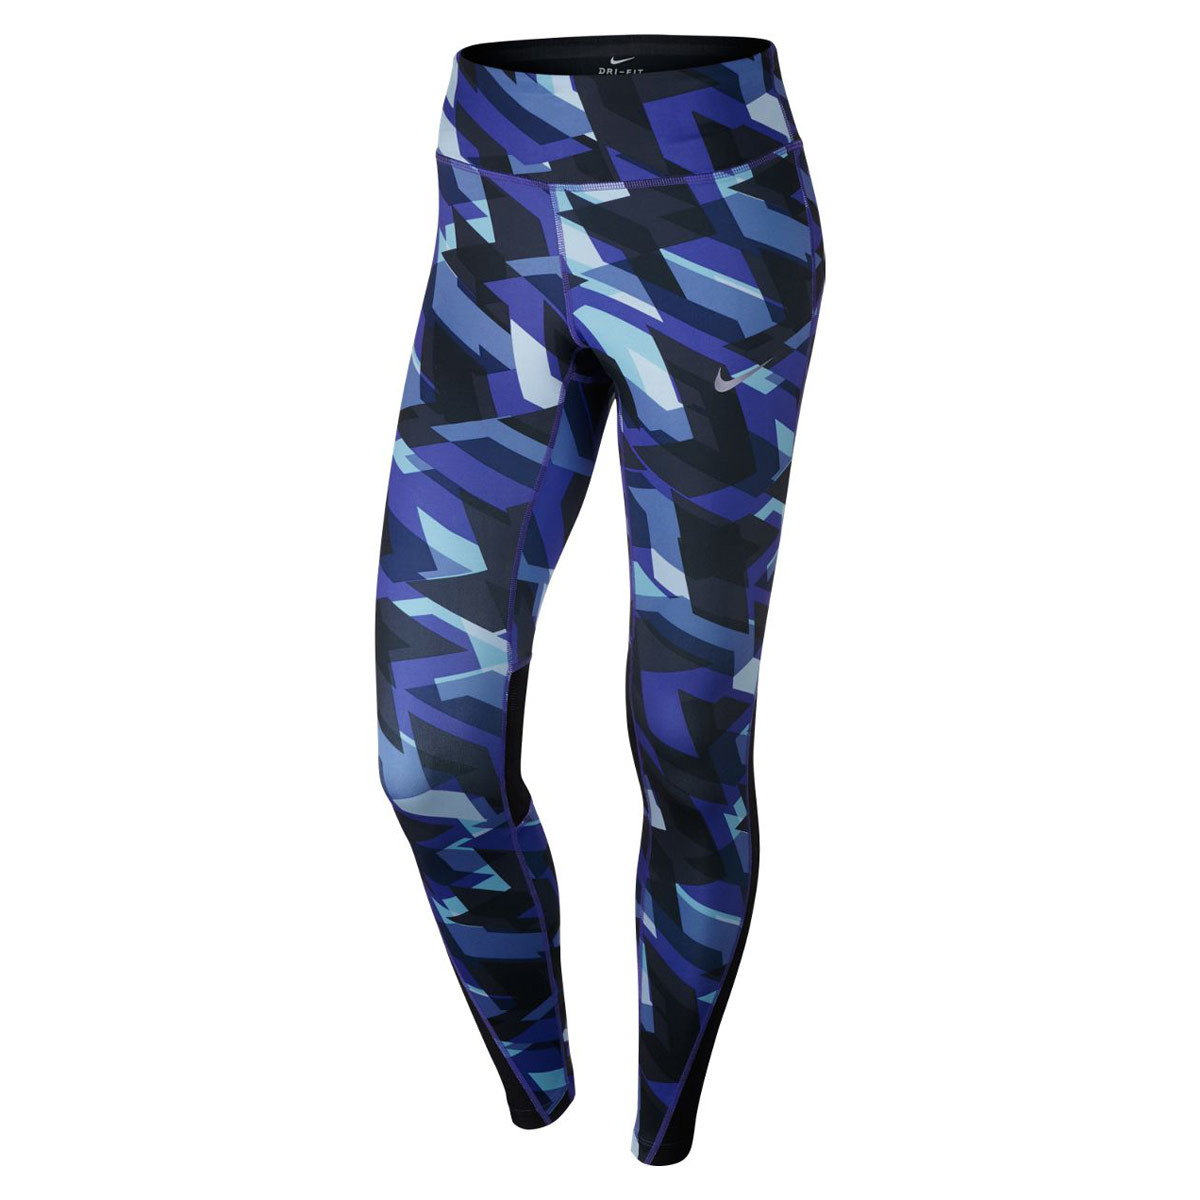 Nike Power Running Tight Pantalons course pour Femme Bleu